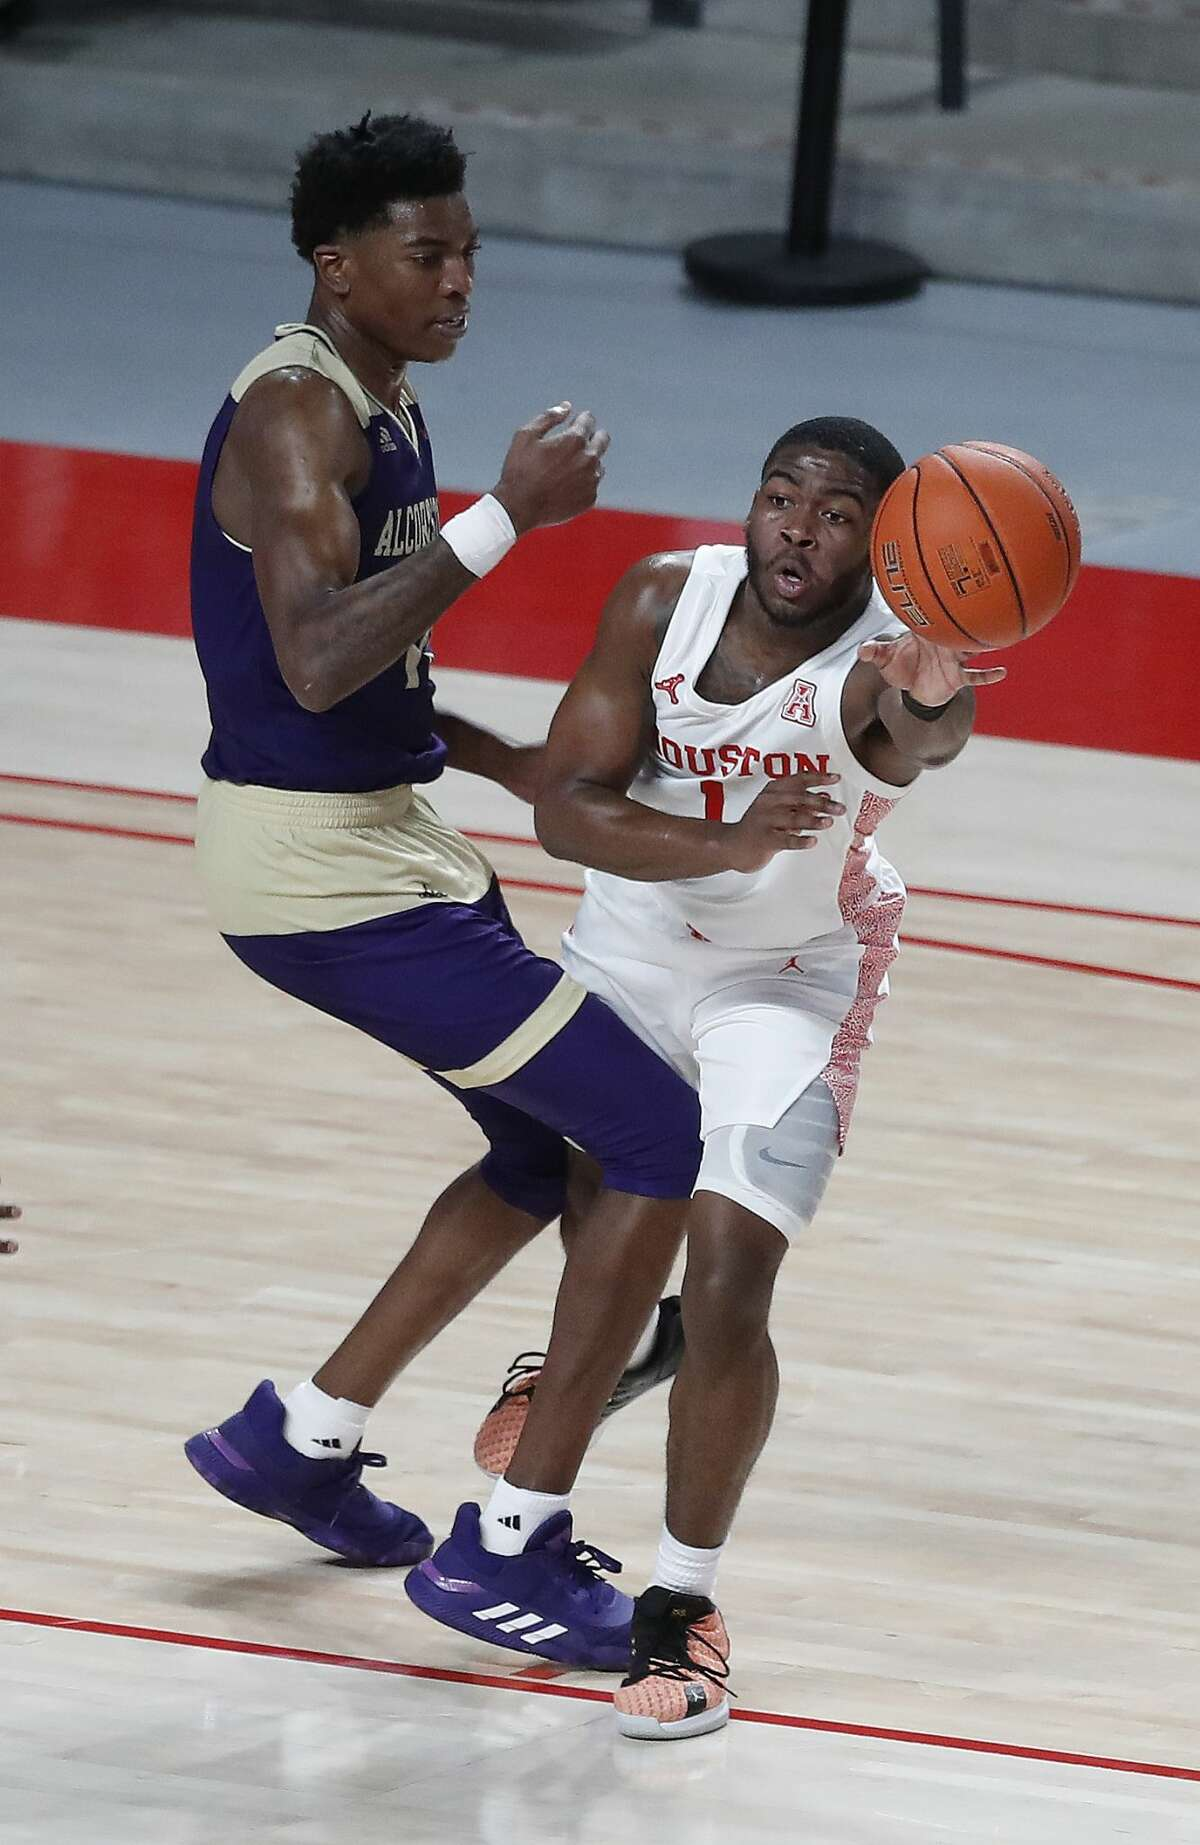 Houston Cougars guard Jamal Shead (1) passes the ball around Alcorn State Braves forward Kobe Wilson (10) during the second half of an NCAA men's basketball game at Fertitta Center Sunday, December 20, 2020, in Houston.